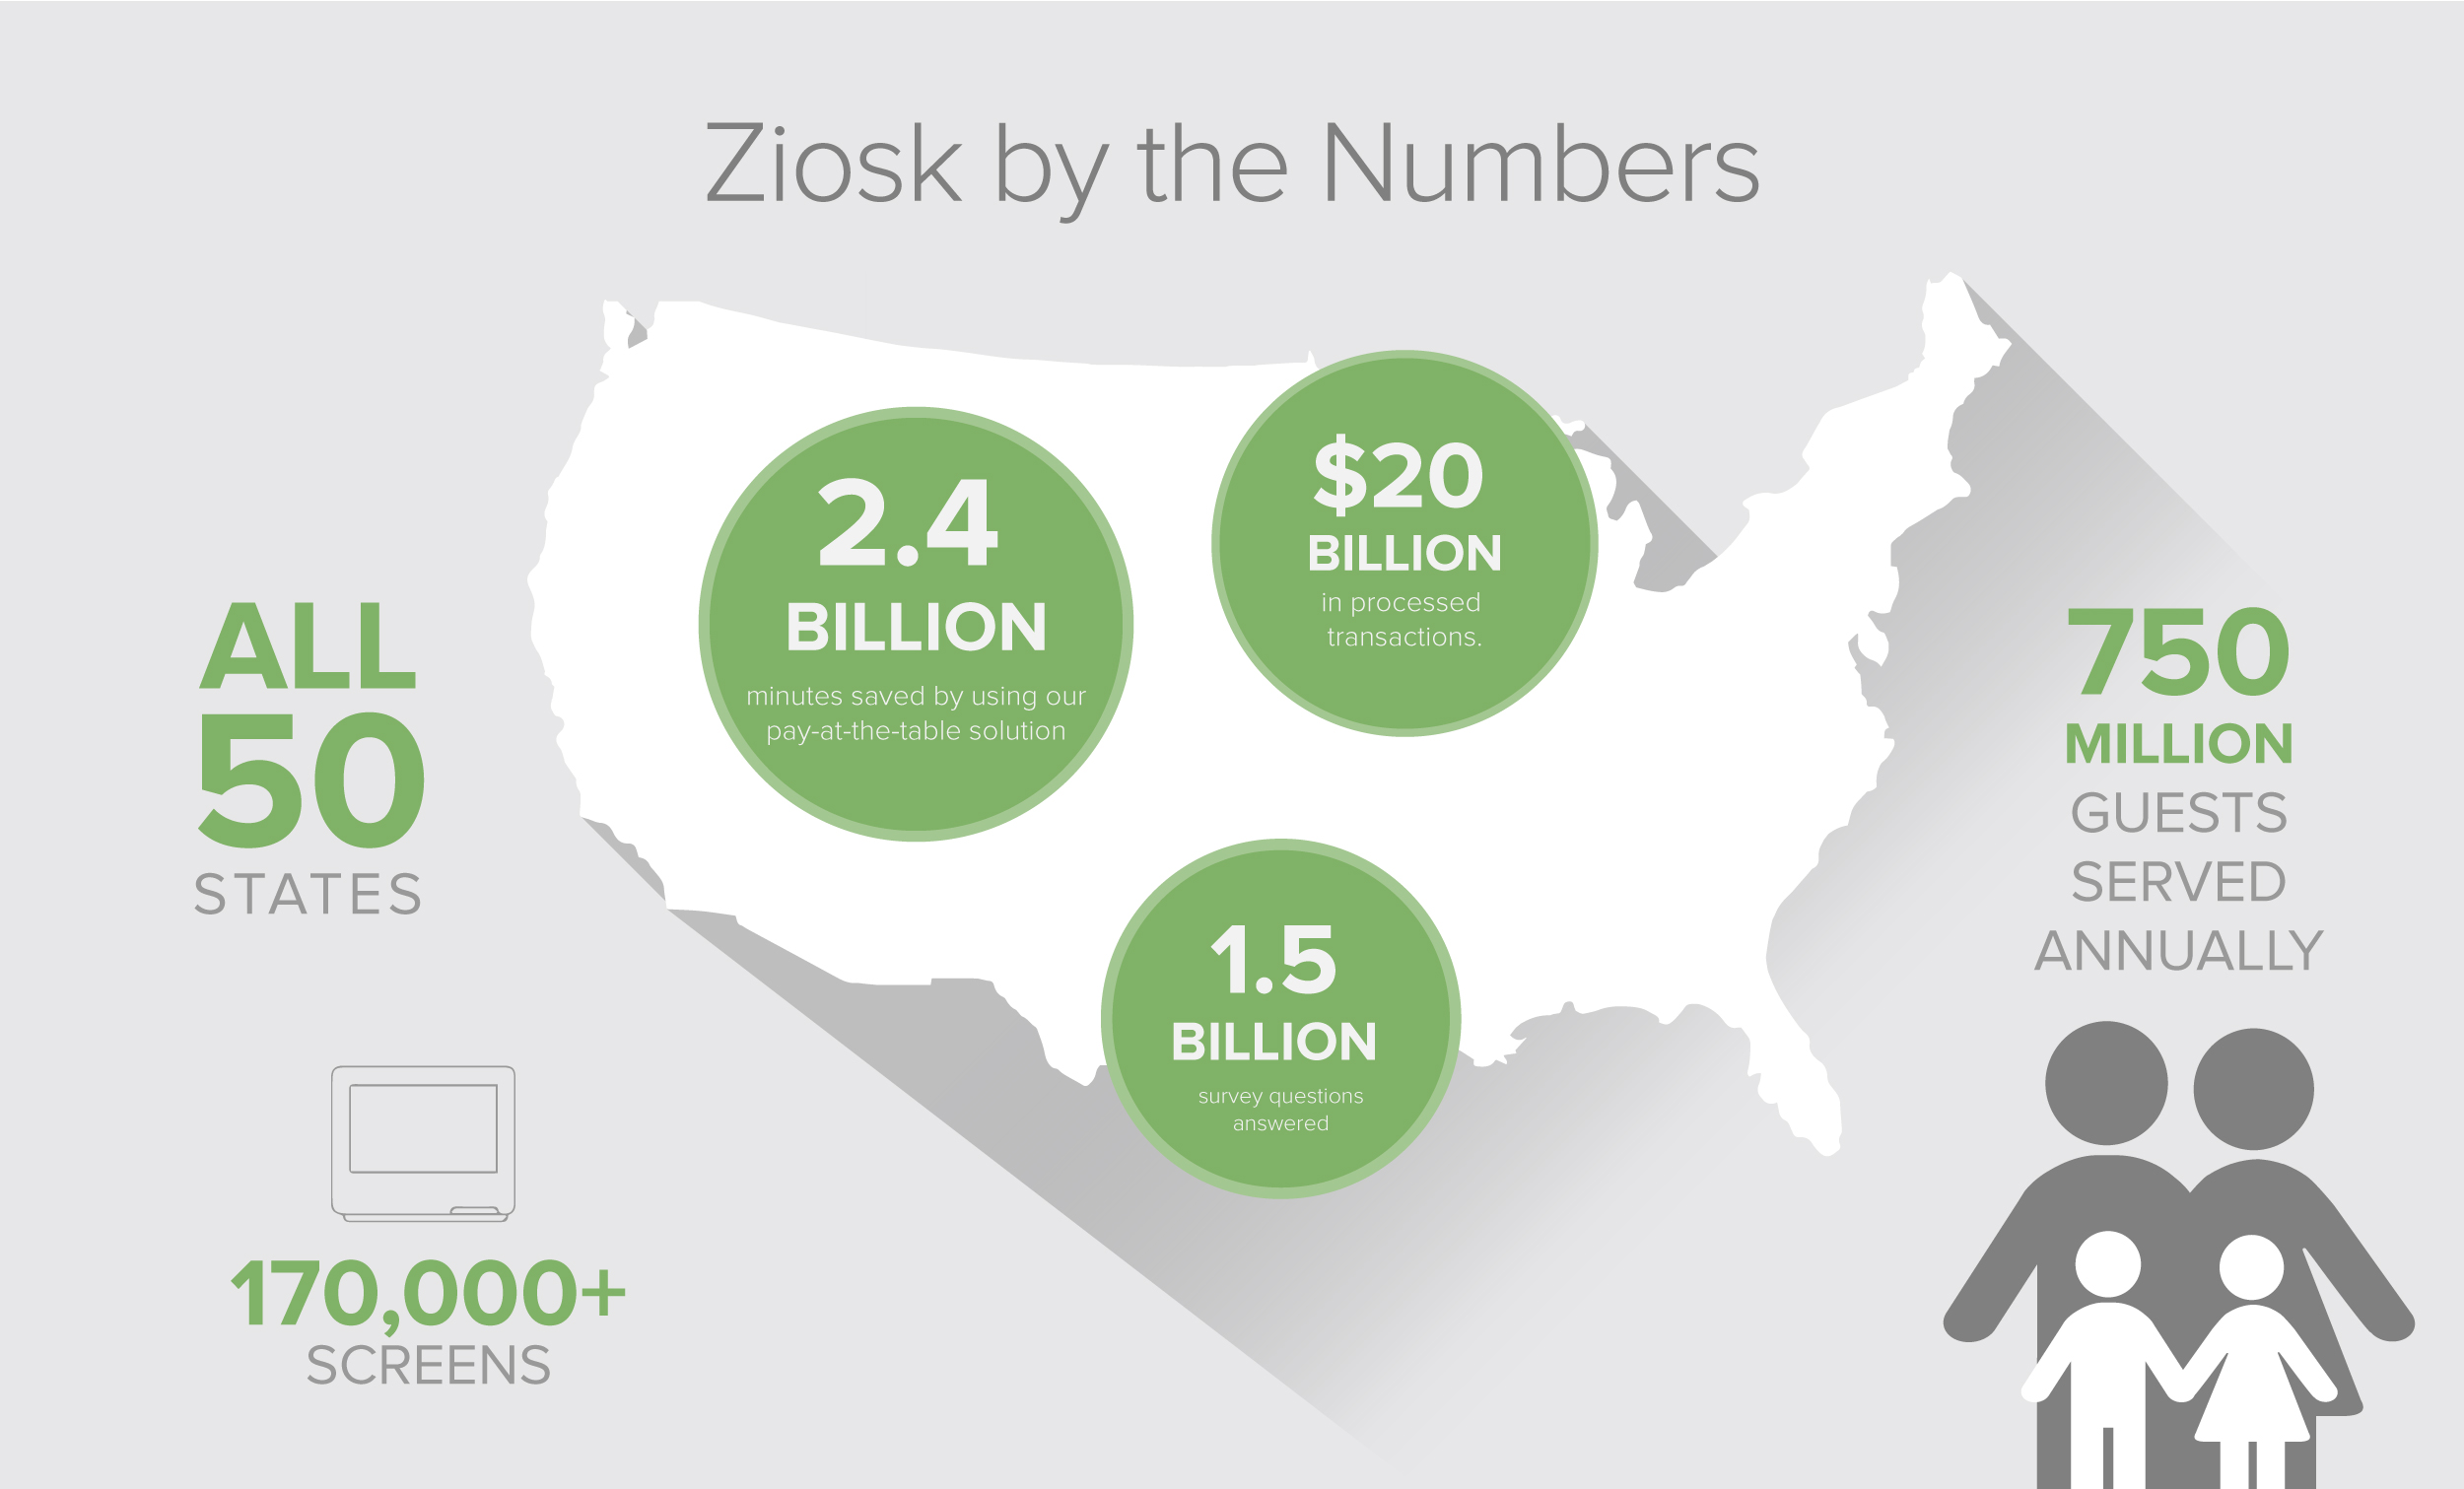 Ziosk by the Numbers - 70,000+ screens - 750 Million Guests Served Annually - 2.4 Billion minutes saved by using our pay-at-the-table solution - $20 Billion processed in transactions - 1.5 Billion survey questionsanswered